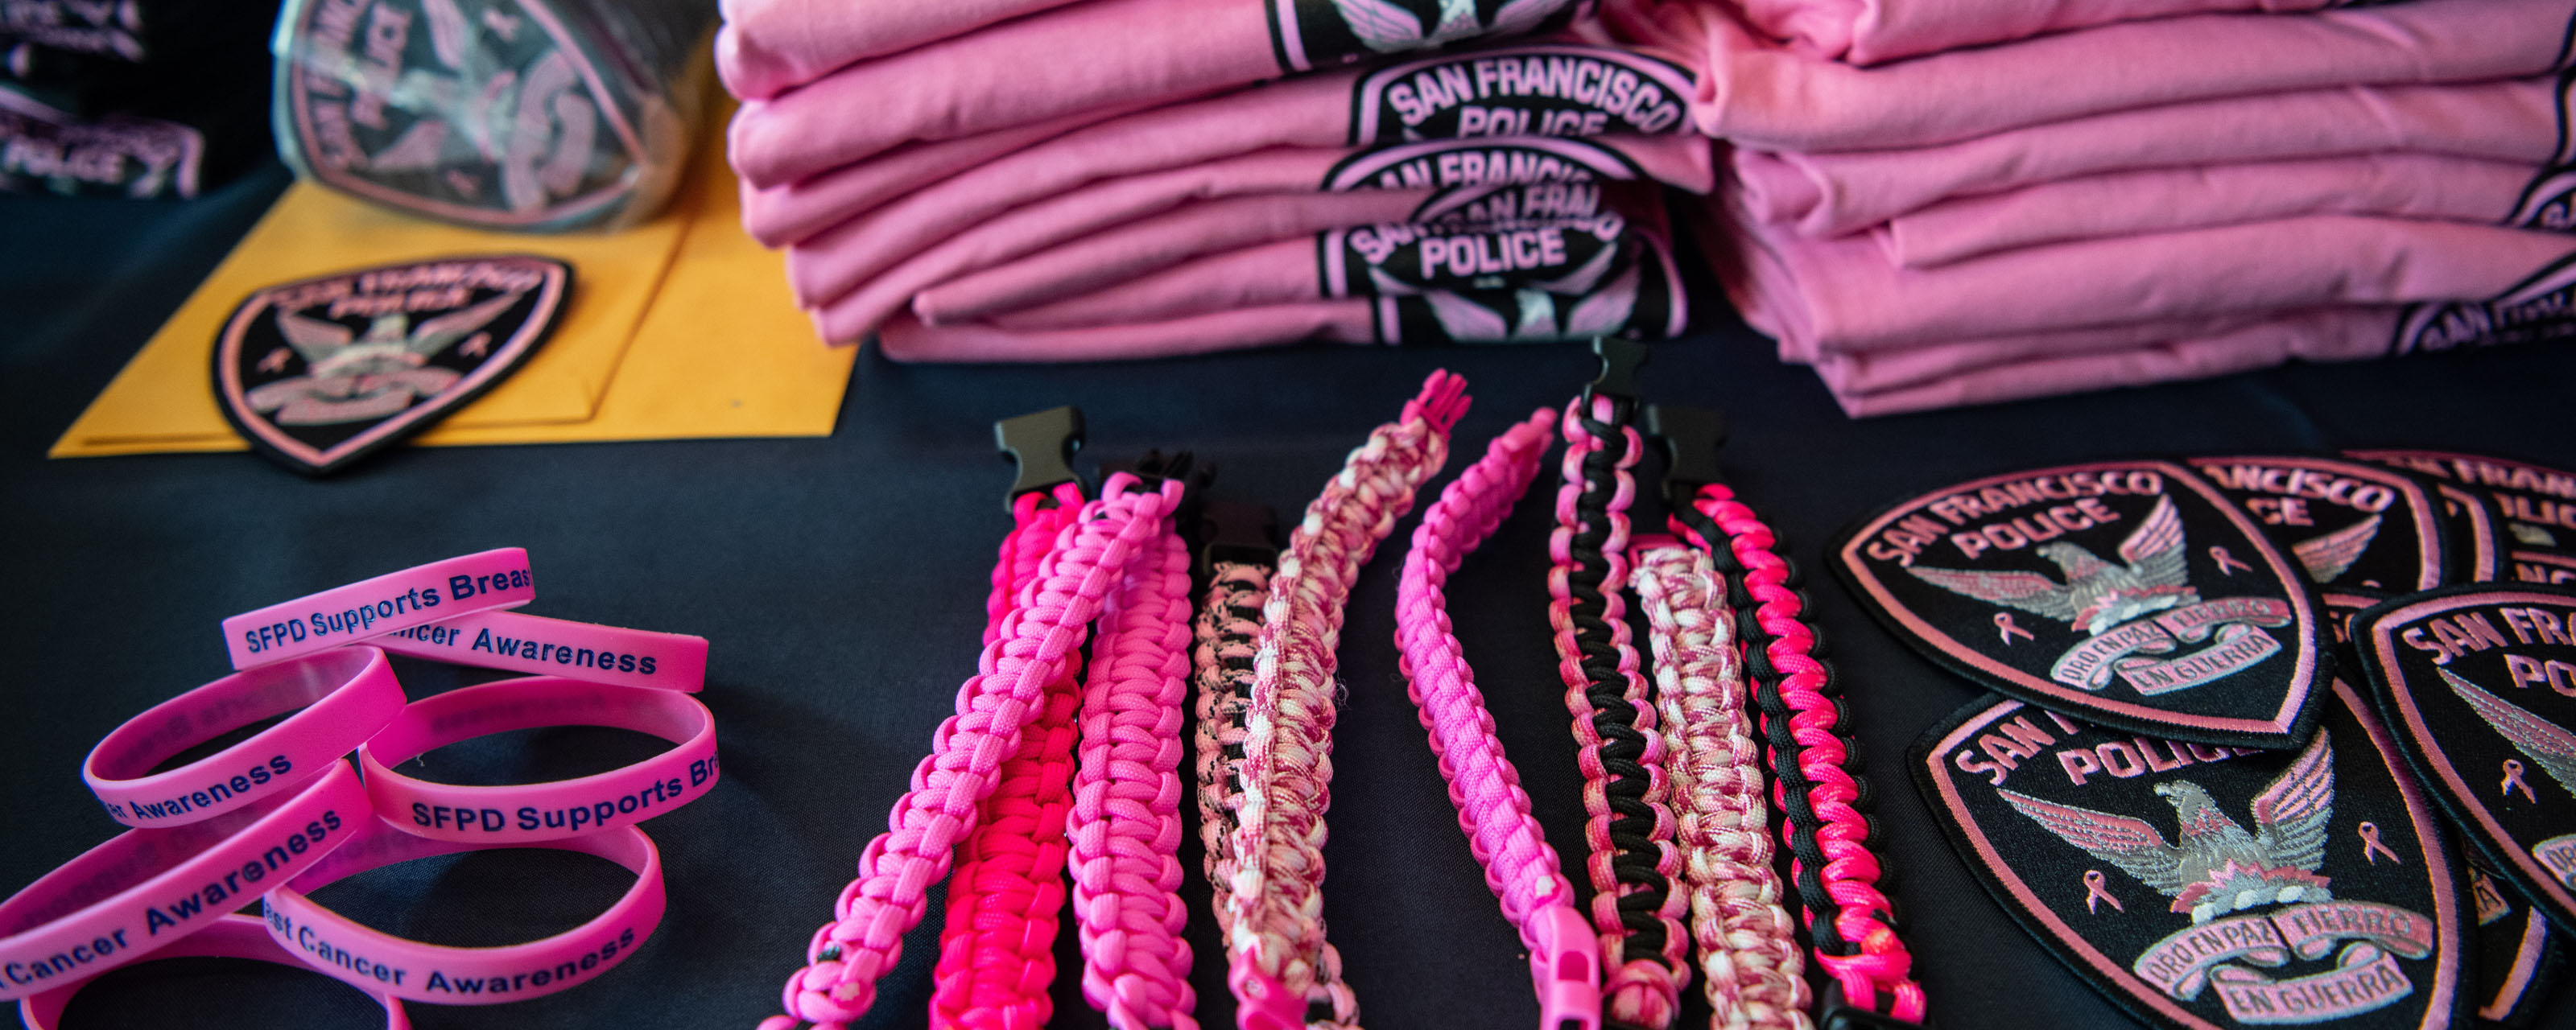 SFPD Pink Patch T-shirts, Pins and Bracelets